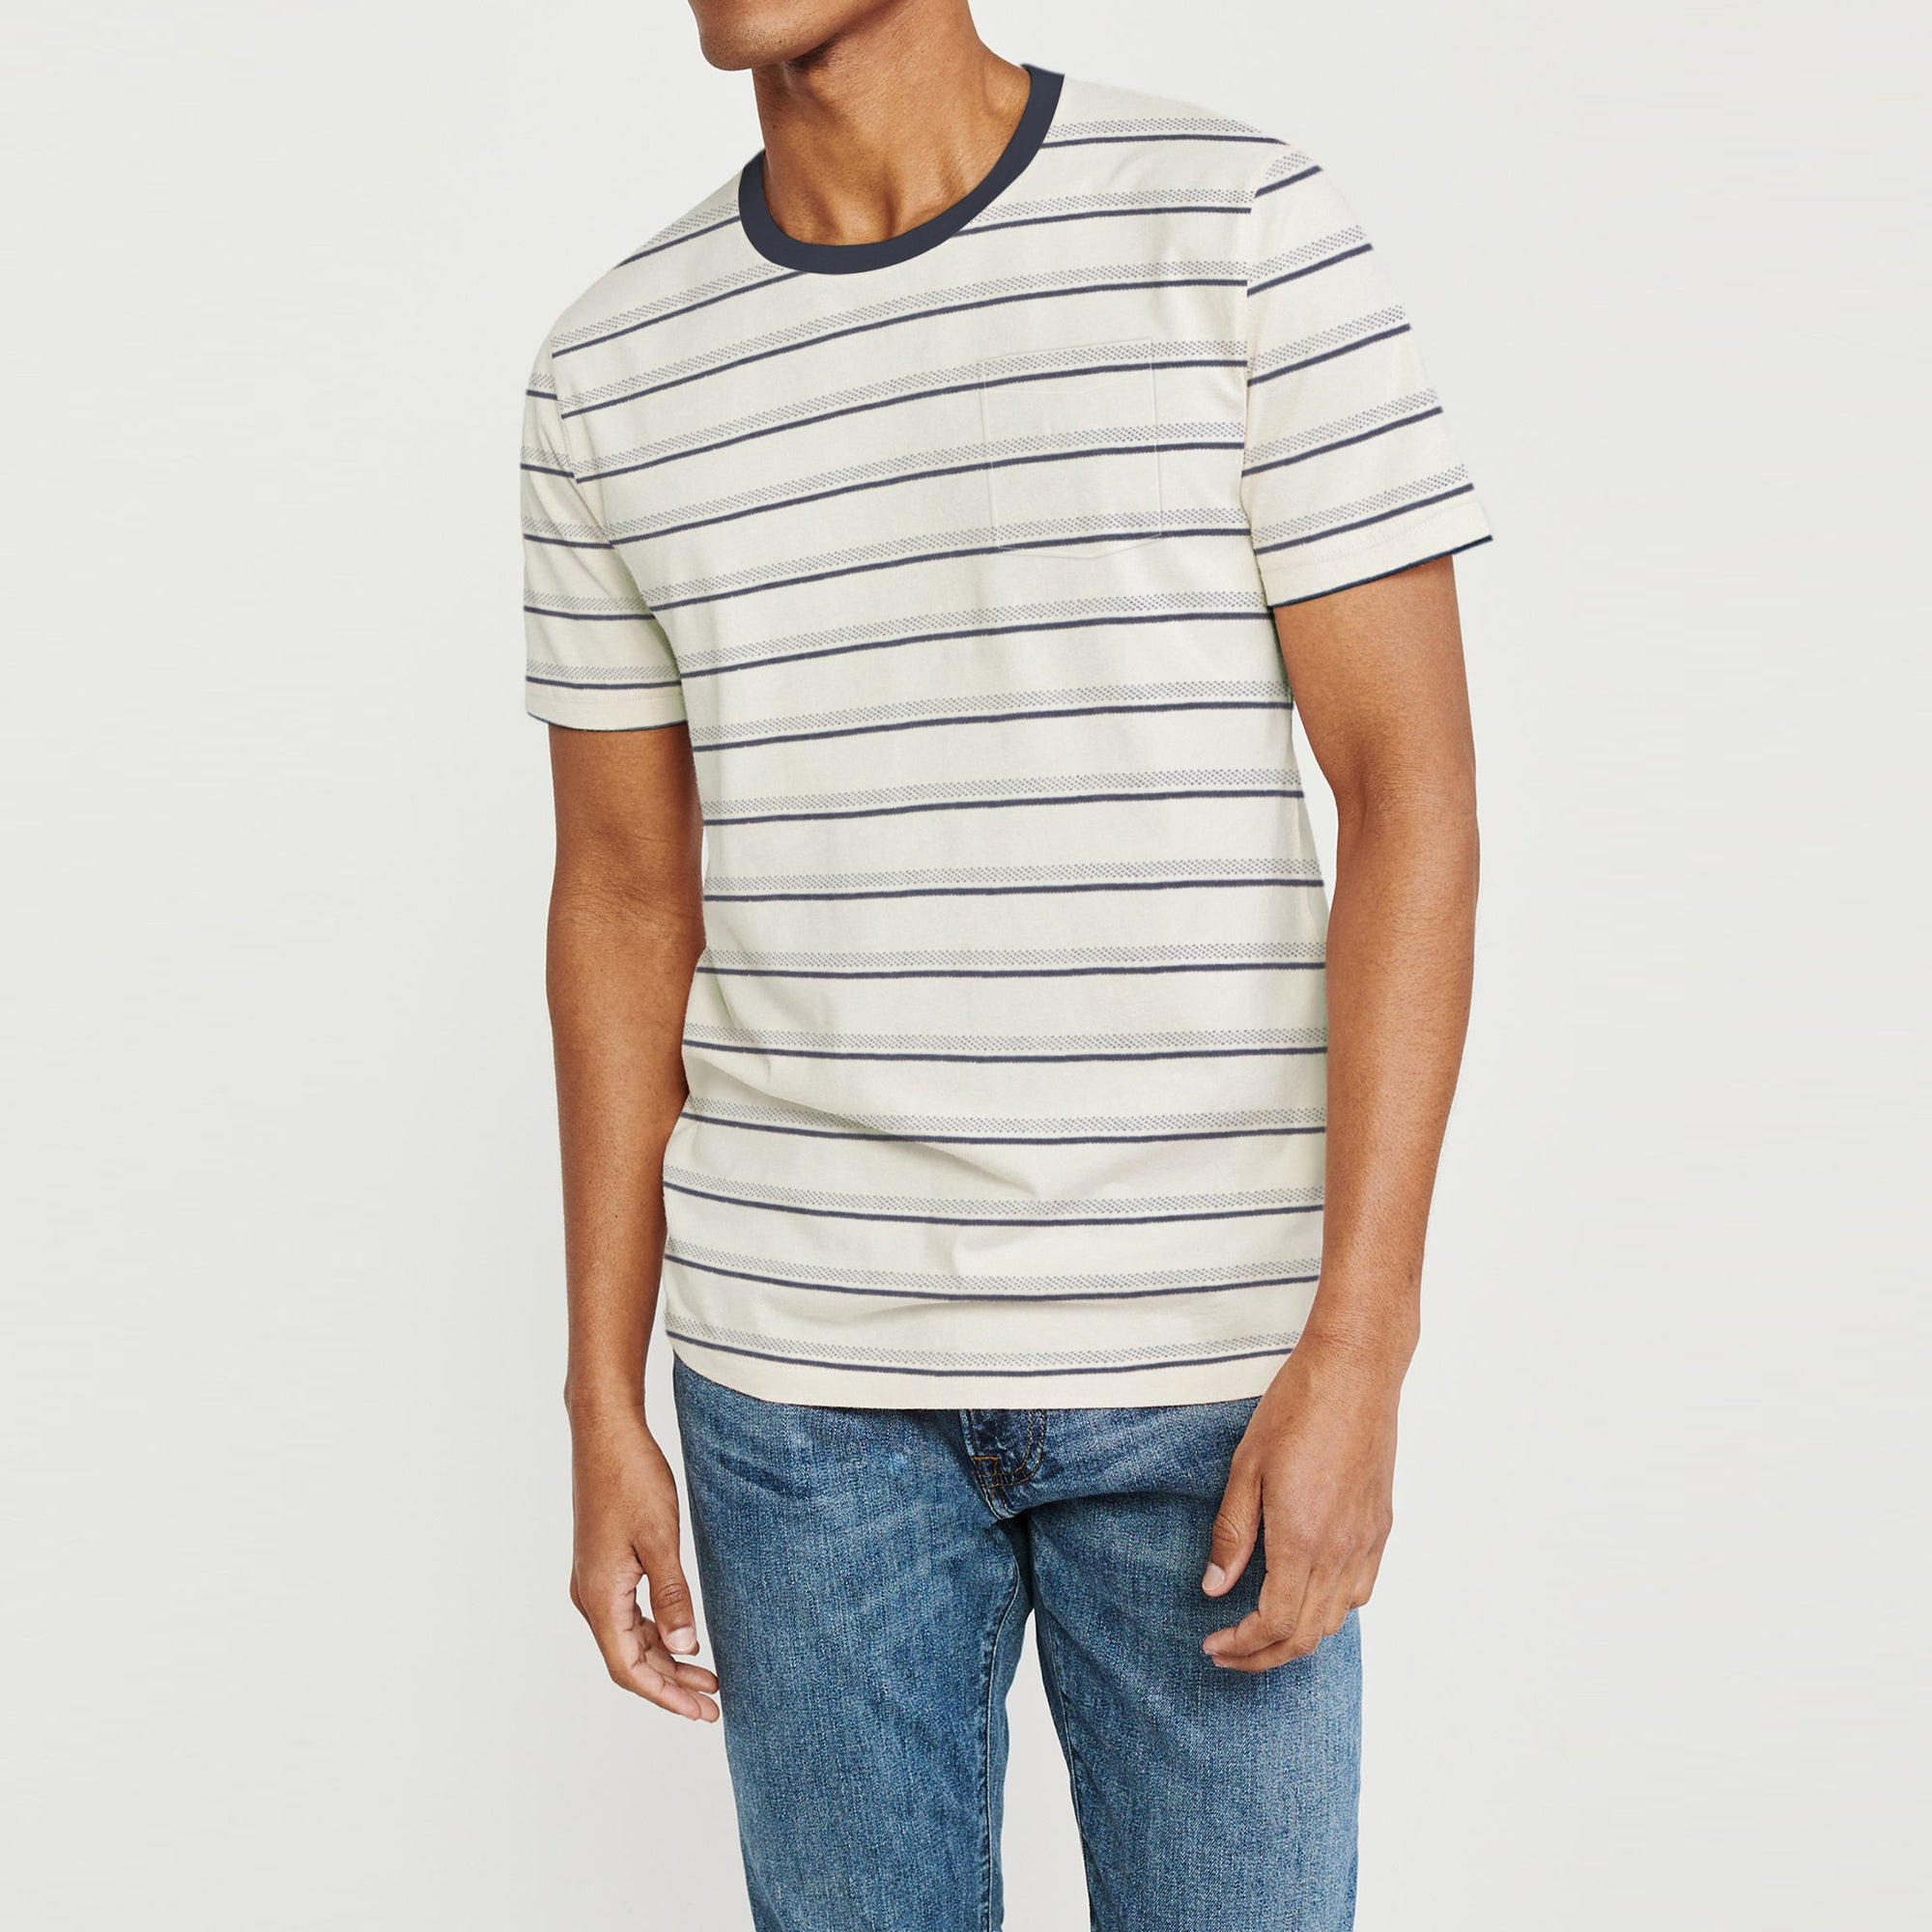 Superior Crew Neck Half Sleeve Tee Shirt For Men-Off White with Stripe-BE8111